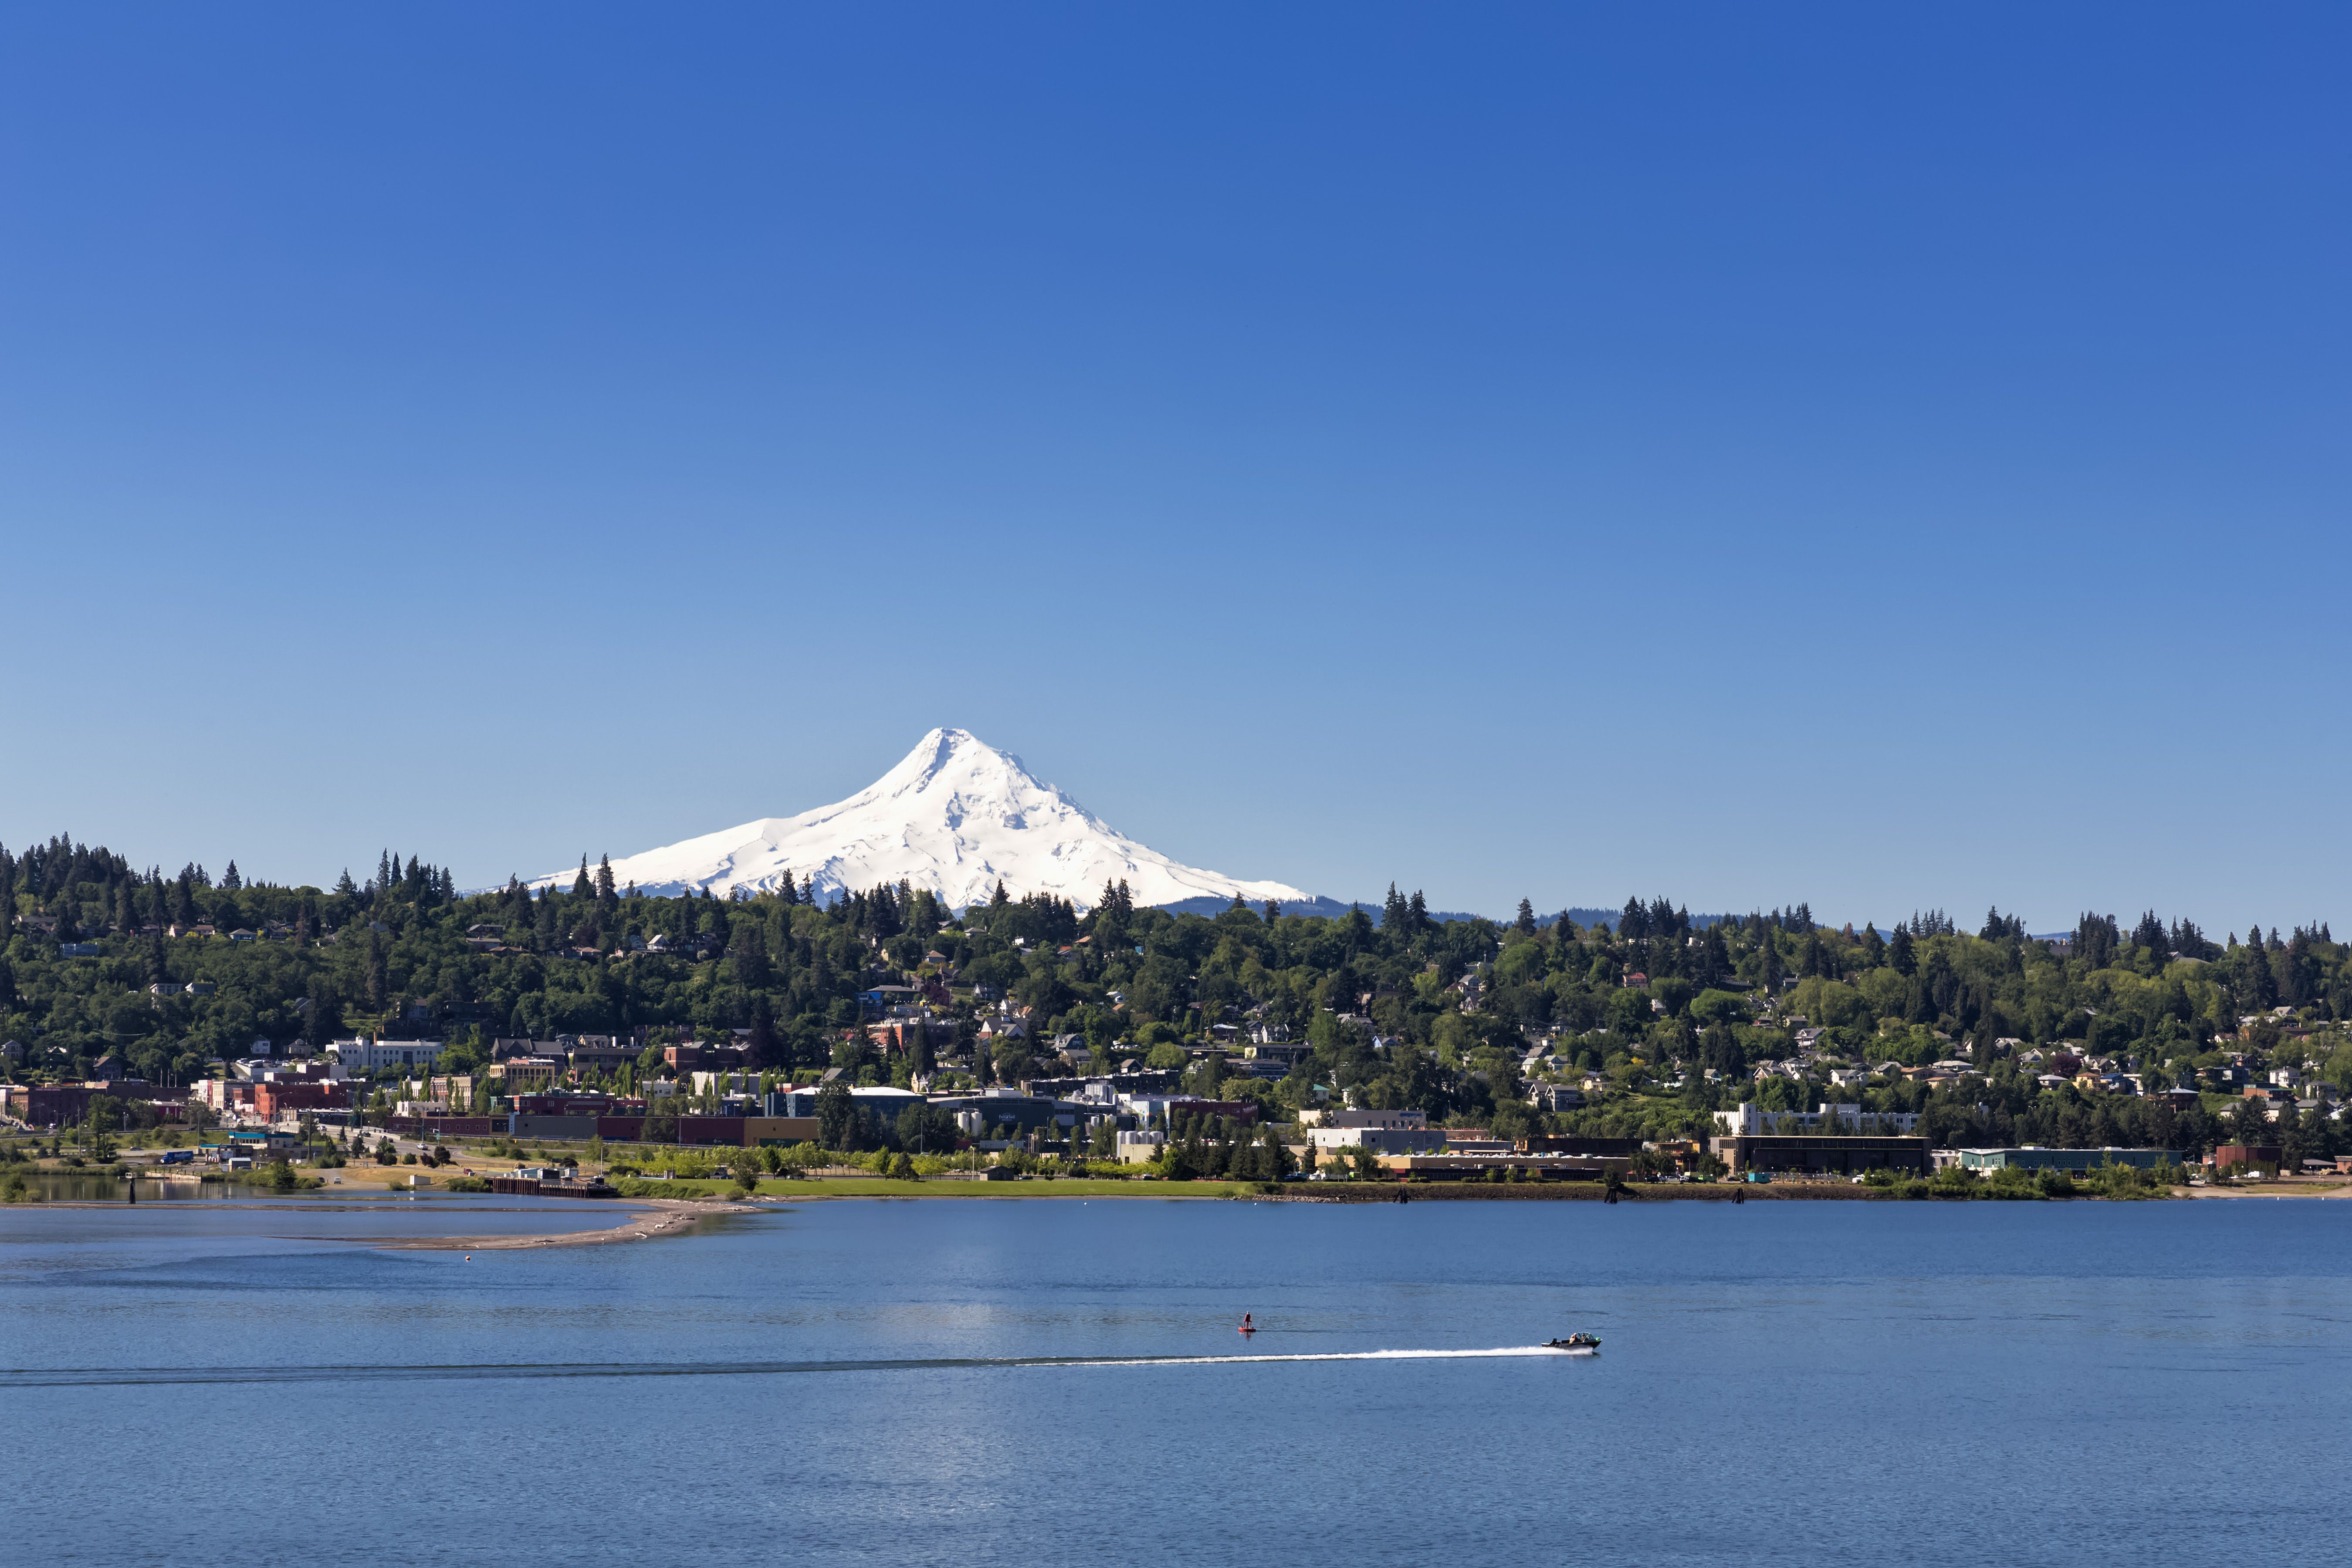 USA, Oregon, Mount Hood, Columbia River und Stadt Hood River